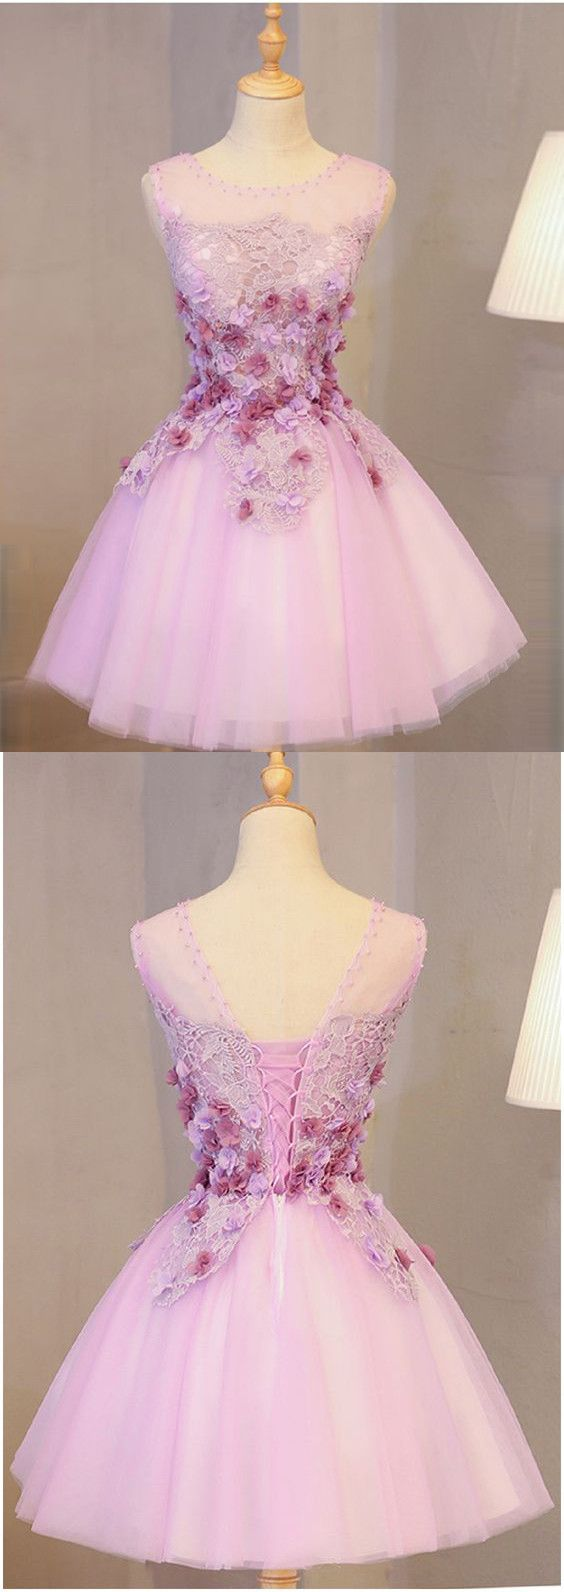 Pink scoop homecoming dress aline cute lace short homecoming